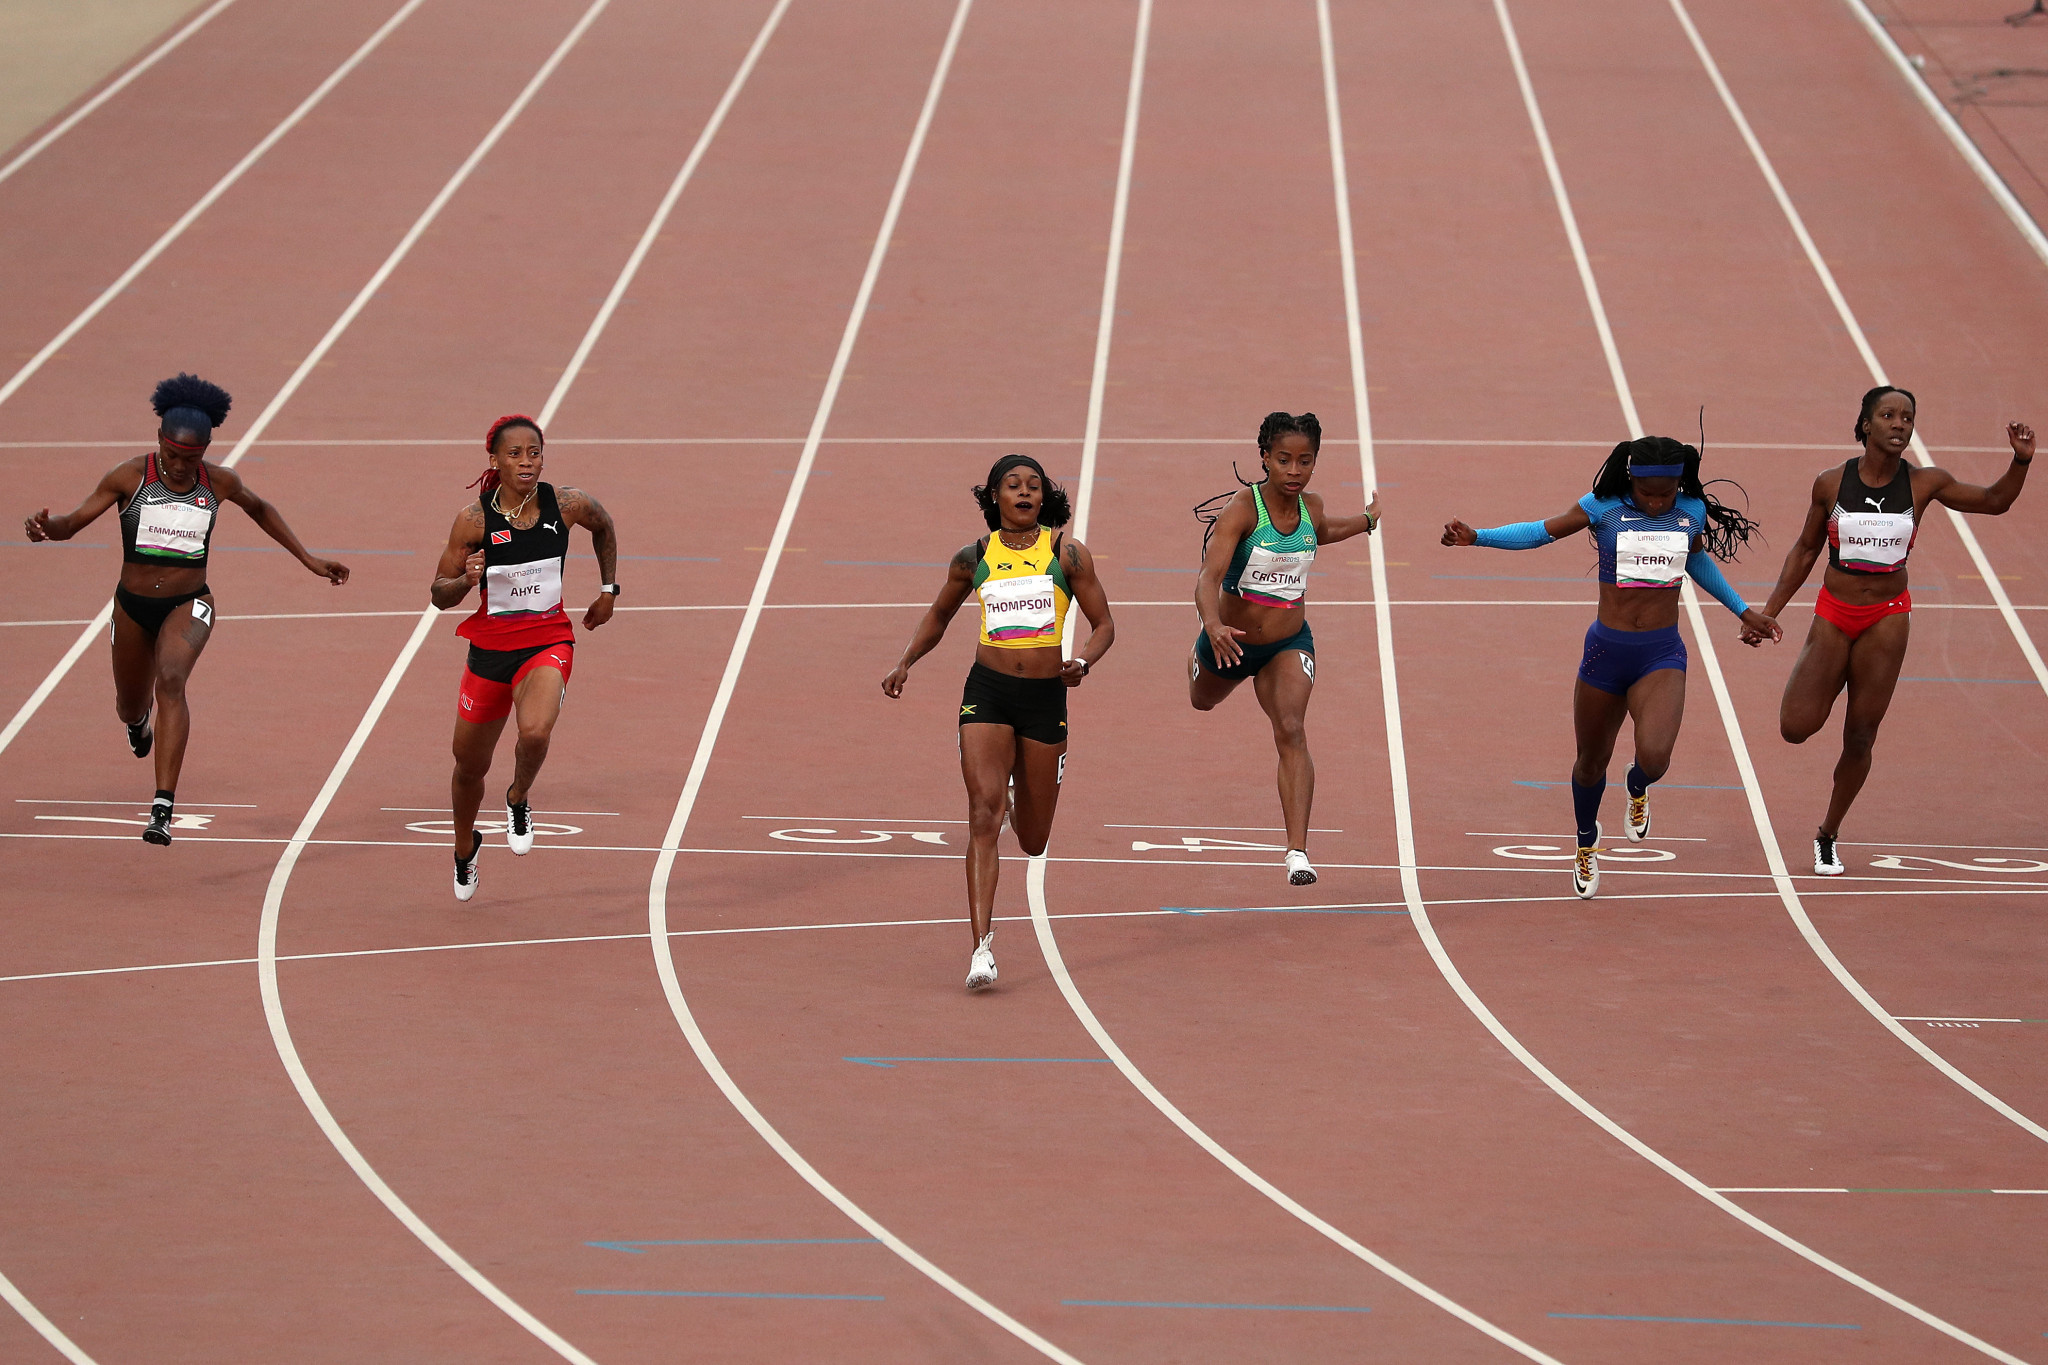 Reigning women's 100m Olympic champion Elaine Thompson of Jamaica eased to victory here, but suggested the event was being used as a warm-up for the World Championships ©Getty Images